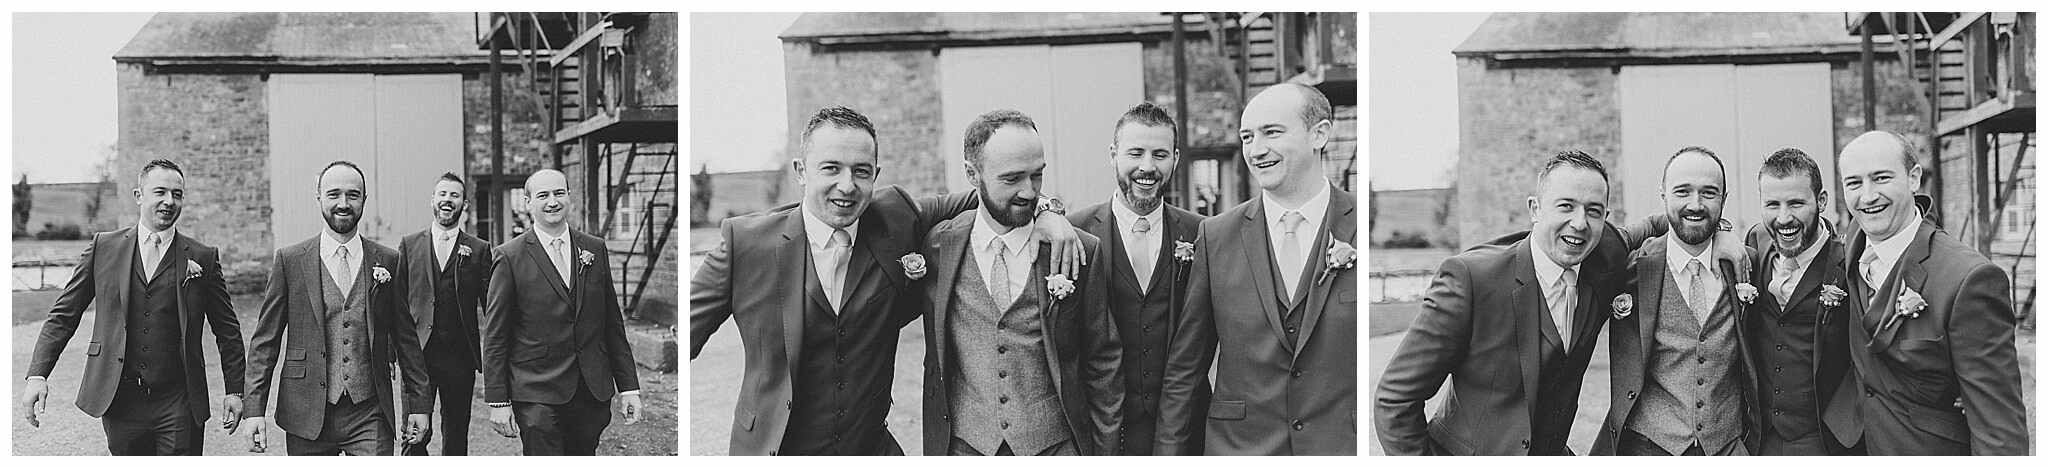 Johnny Corcoran Lifestyle Relaxed Unposed documentary Natural Wedding Portrait Photography Dublin Ireland 2139 - Fun and Relaxed wedding and elopement photography in Ireland, perfect for adventurous and outdoorsy couples